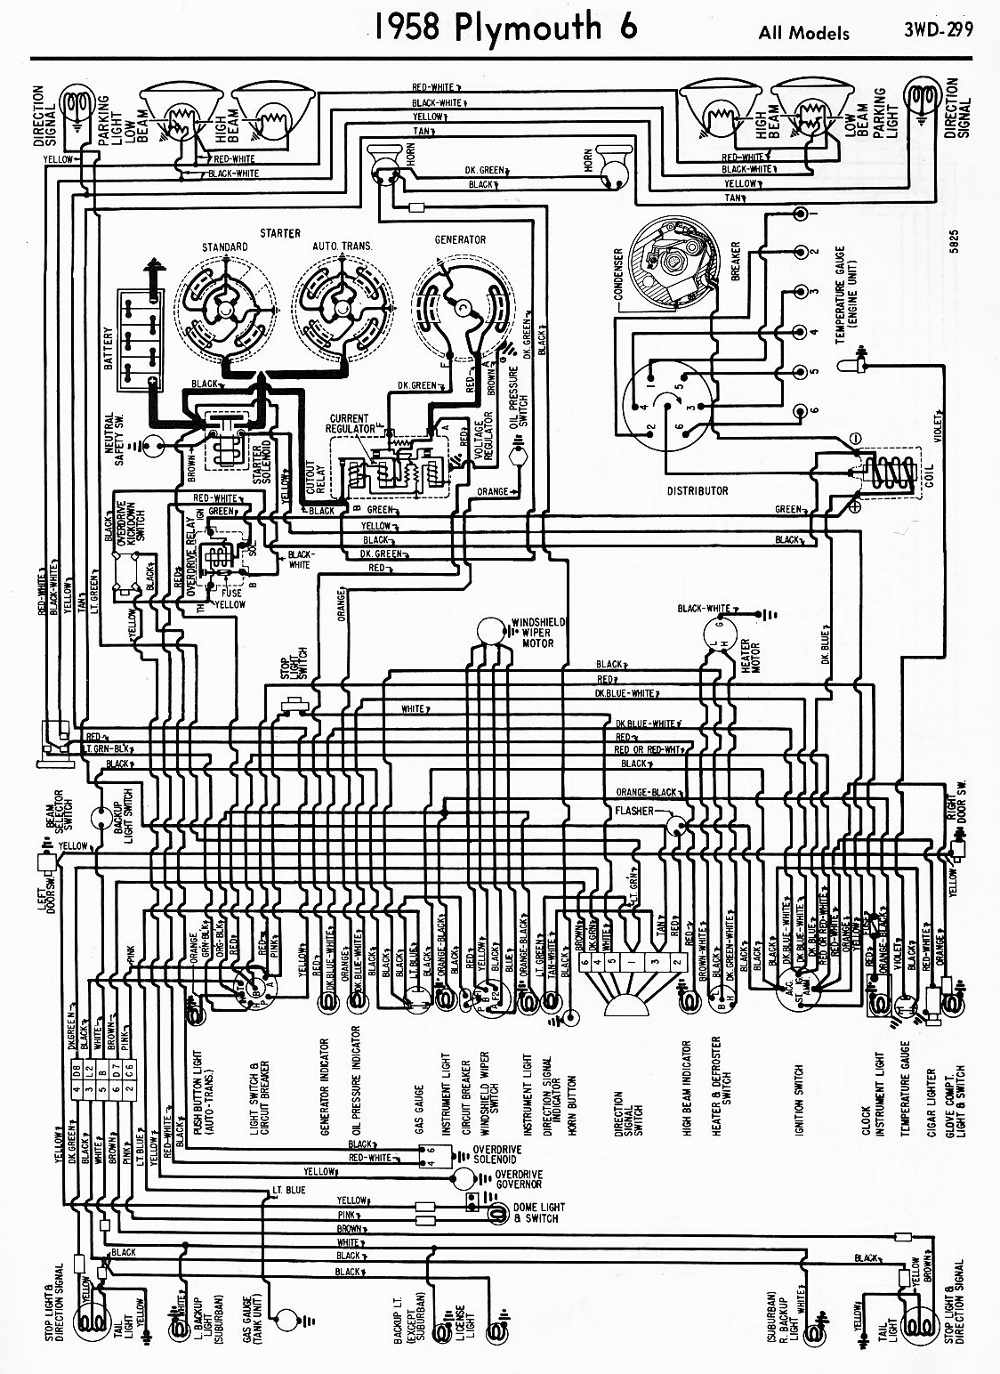 1951 plymouth cranbrook wiring diagram wiring diagram u2022 rh msblog co Class A RV Wiring Diagrams Mopar Wiring Diagrams